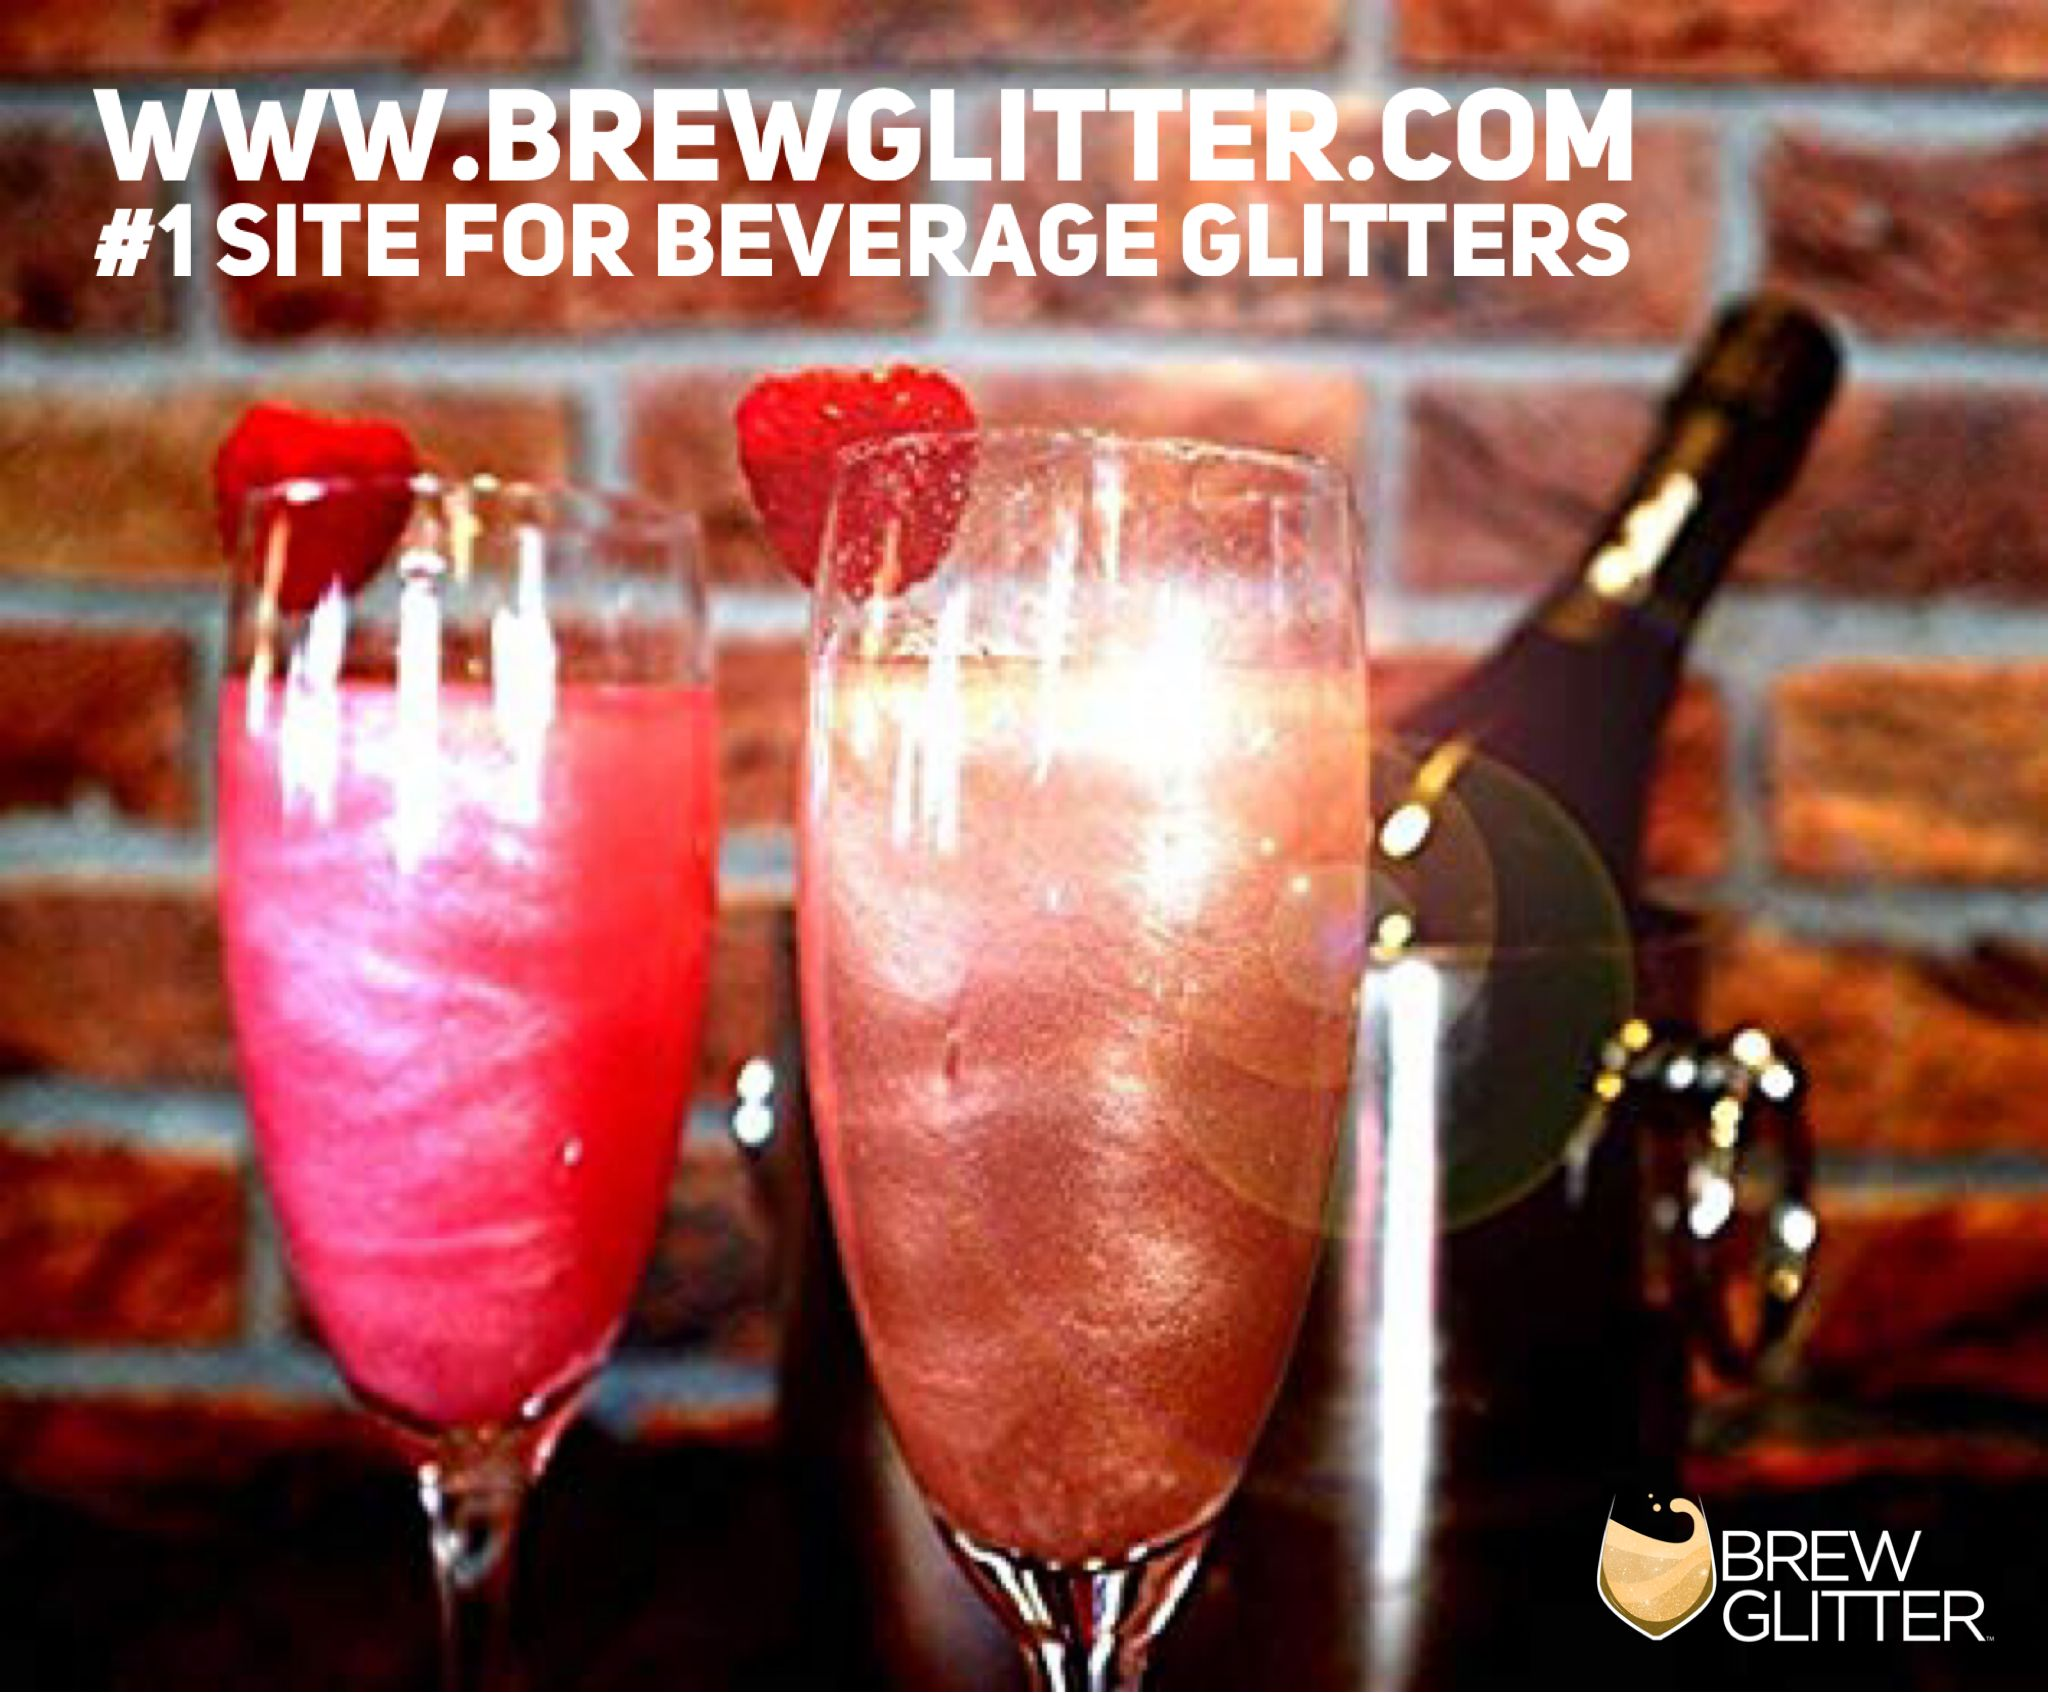 Edible Champagne Glitter Day Brewglitter Com Brewing Craft Brewing Beverages